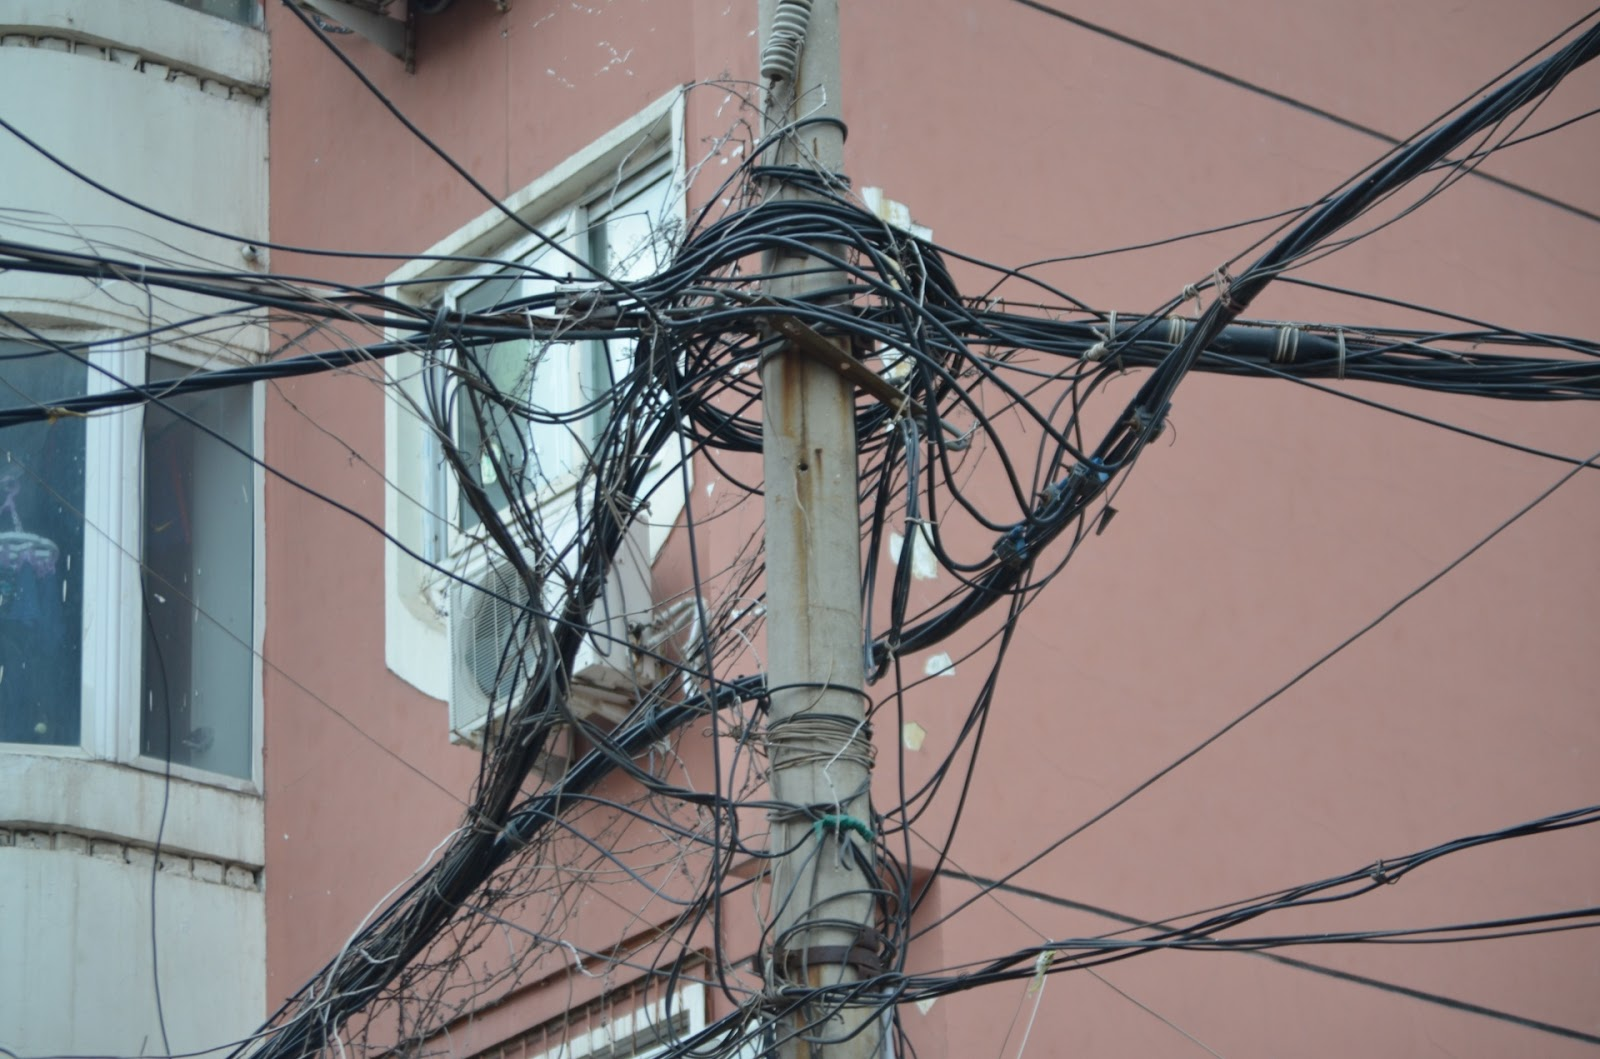 hight resolution of wires competing for space on free market pole